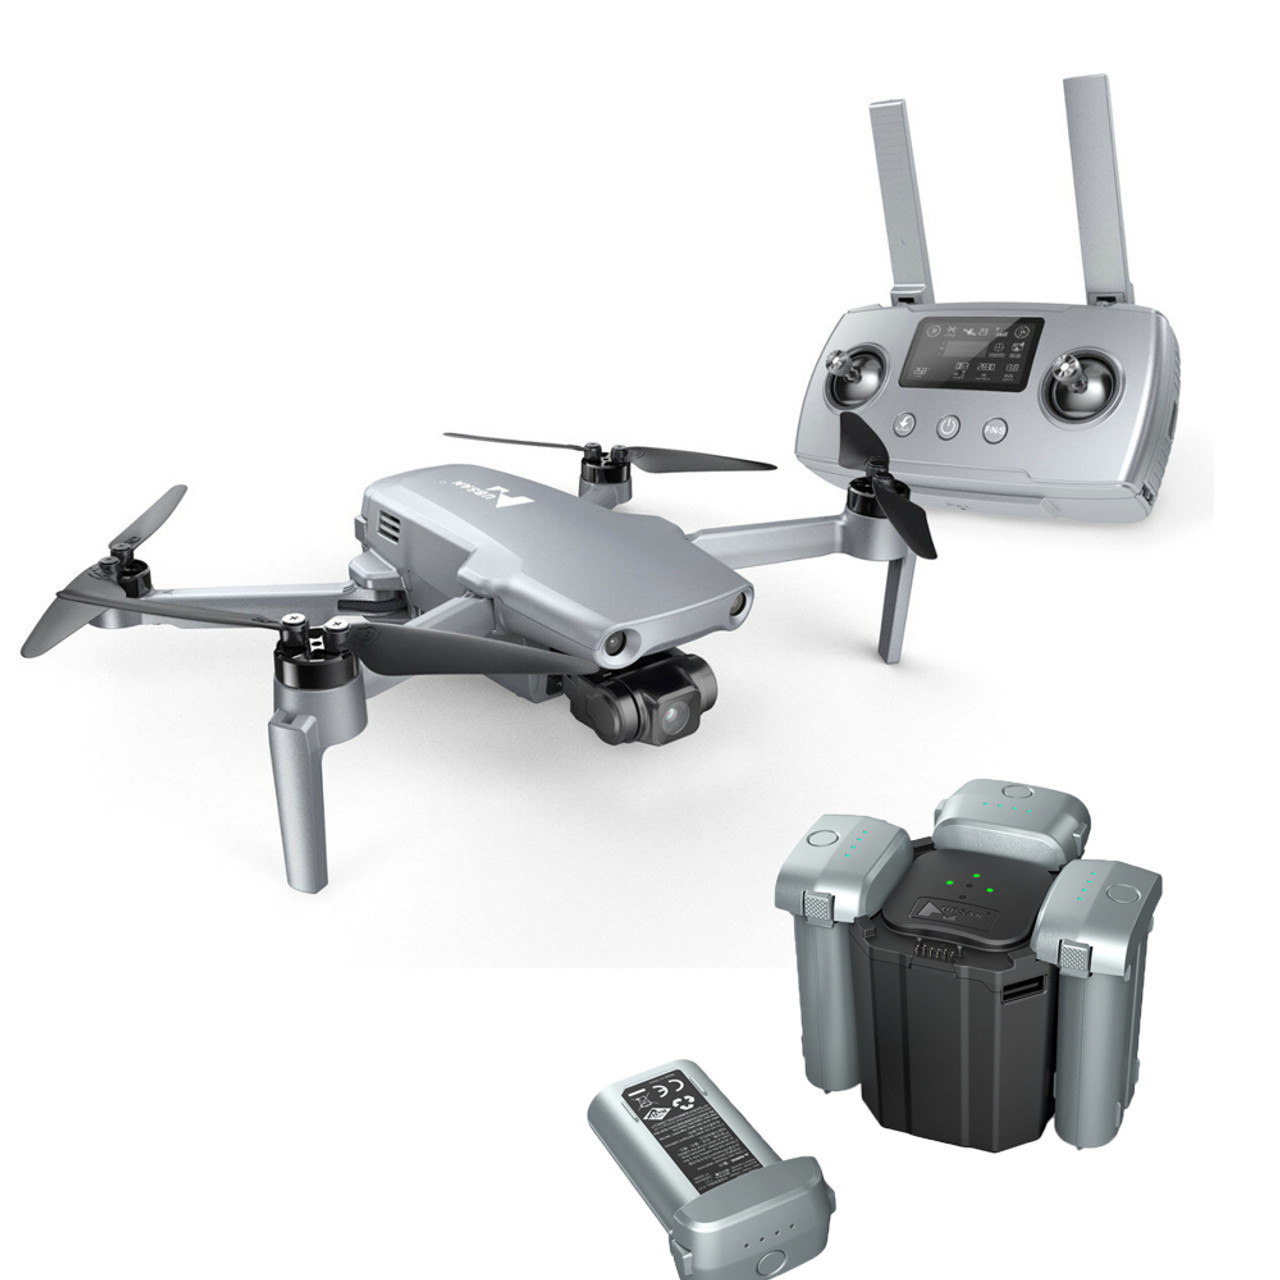 Hubsan ZINO Mini PRO 249g GPS 5G WiFi 10KM FPV with 4K 30fps Camera 3-axis Gimbal 3D Obstacle Sensing 40mins Flight Time RC Drone Quadcopter RTF